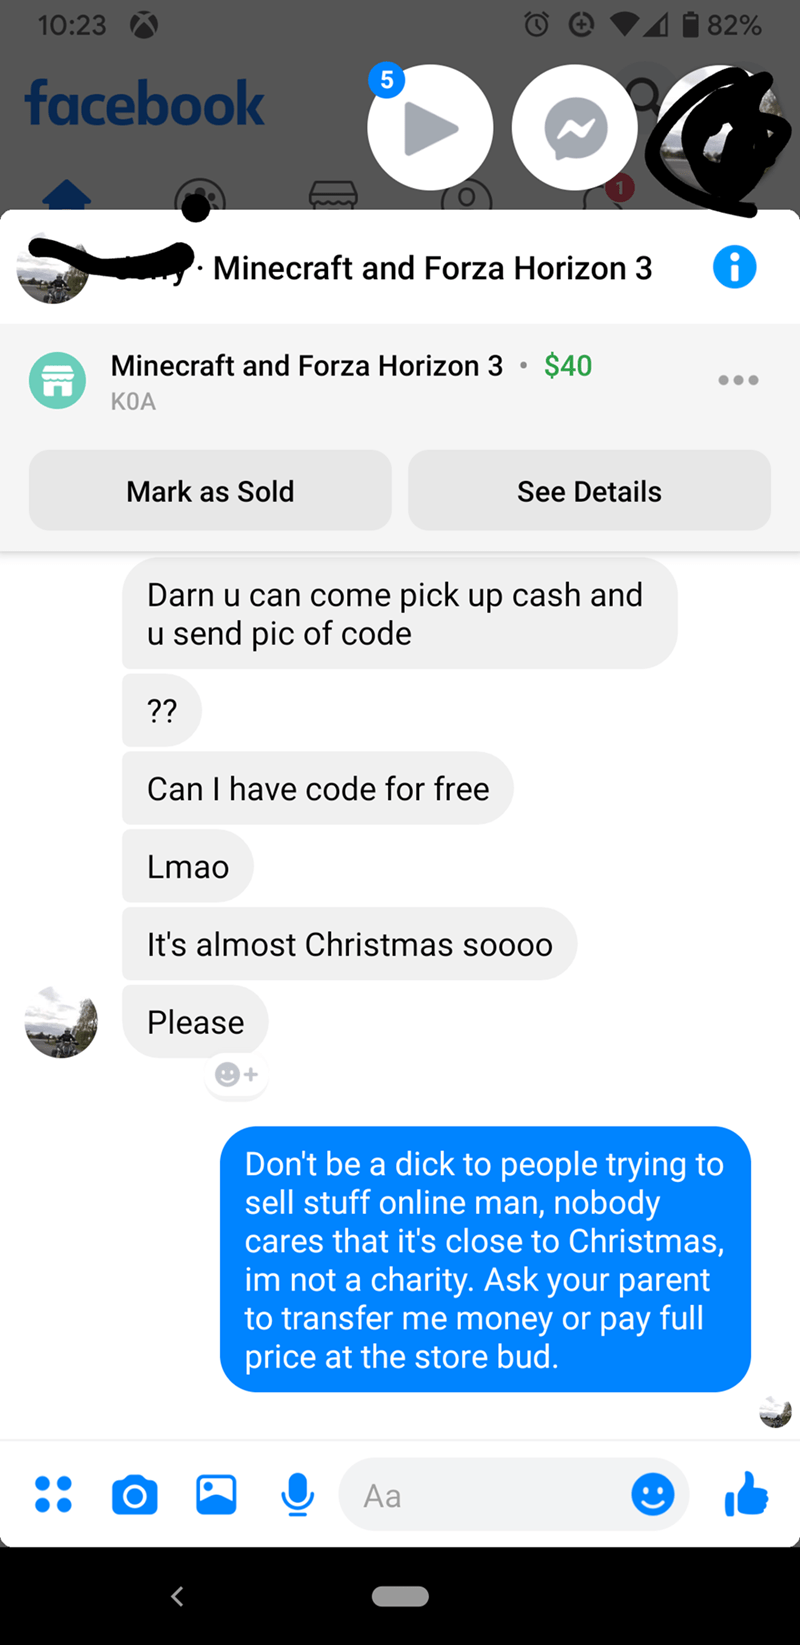 Text - i 82% 10:23 facebook Minecraft and Forza Horizon 3 Minecraft and Forza Horizon 3 • $40 KOA Mark as Sold See Details Darn u can come pick up cash and u send pic of code ?? Can I have code for free Lmao It's almost Christmas so000 Please Don't be a dick to people trying to sell stuff online man, nobody cares that it's close to Christmas, im not a charity. Ask your parent to transfer me money or pay full price at the store bud. Aa